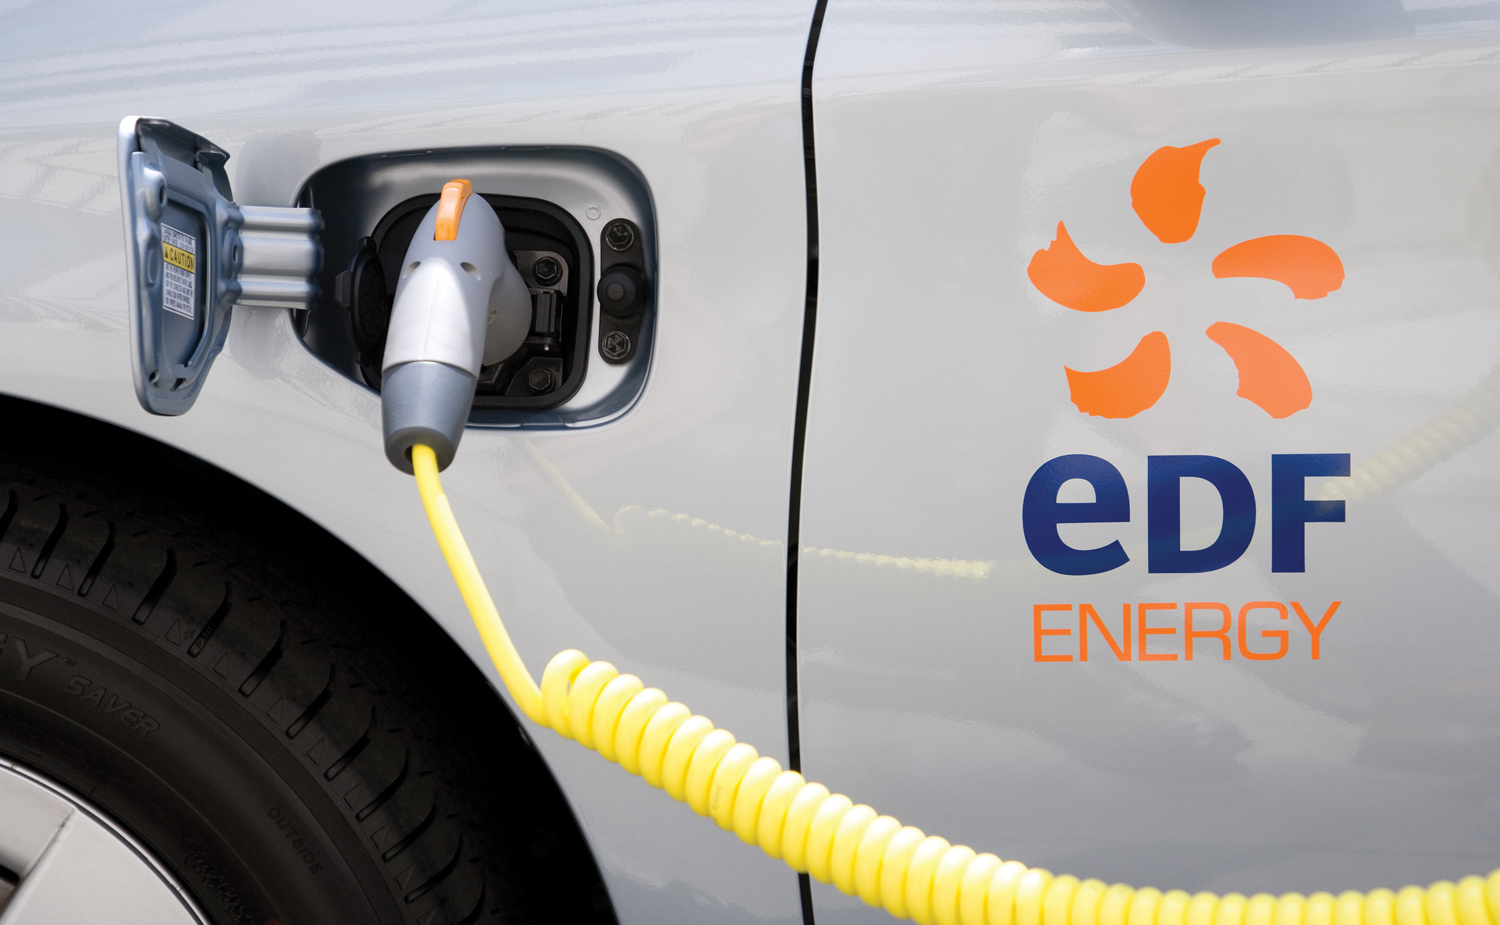 edf-energy-customer-service-number